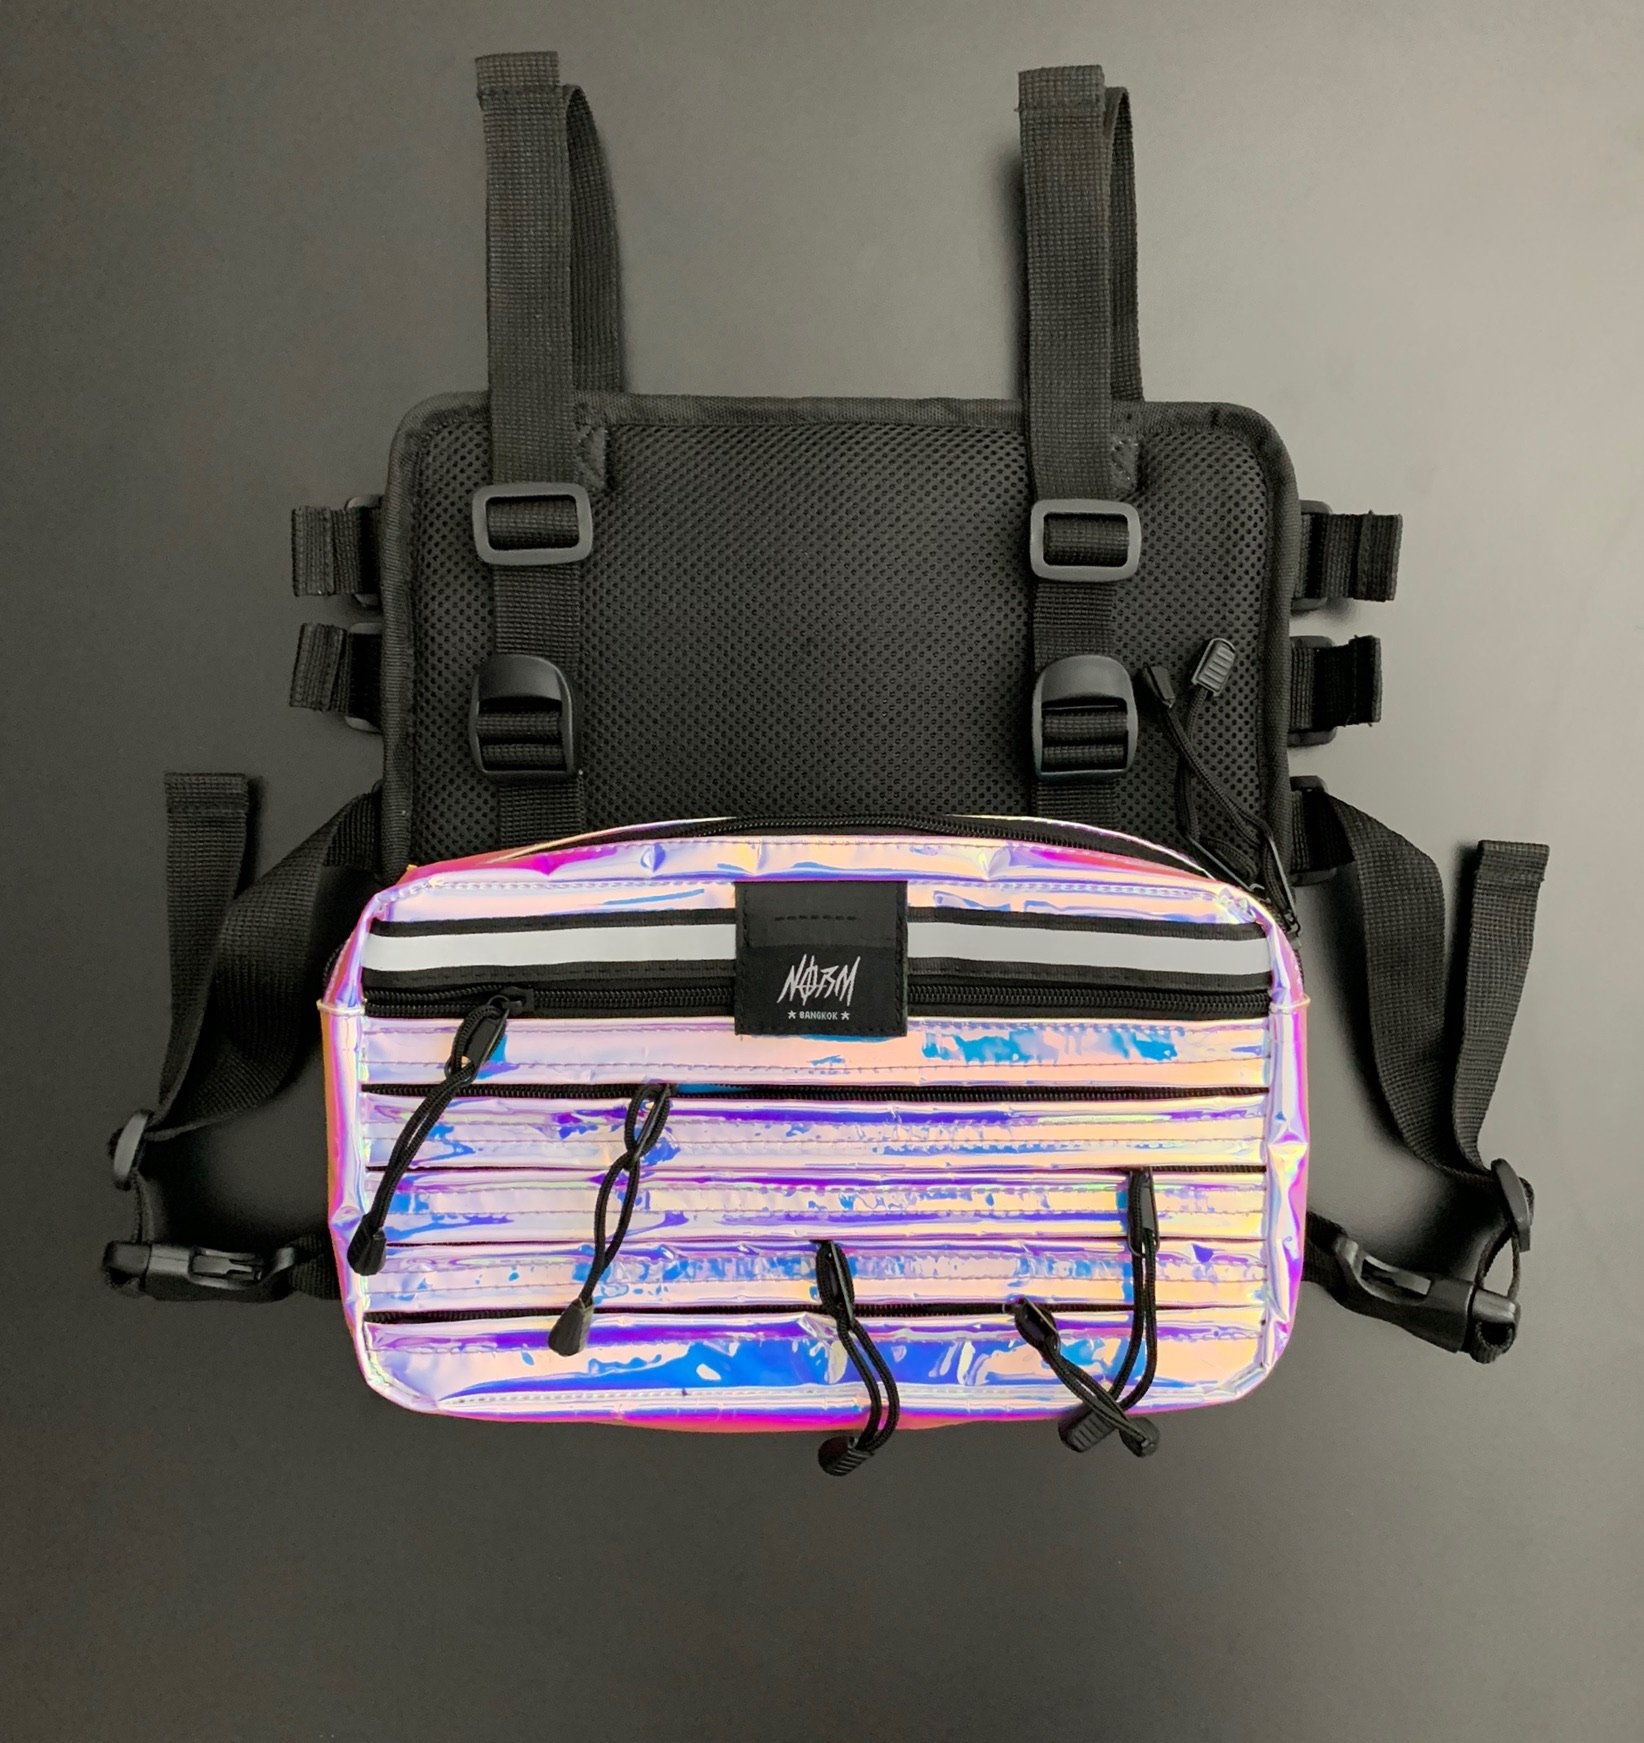 TTANK HOLOGRAM CHROME